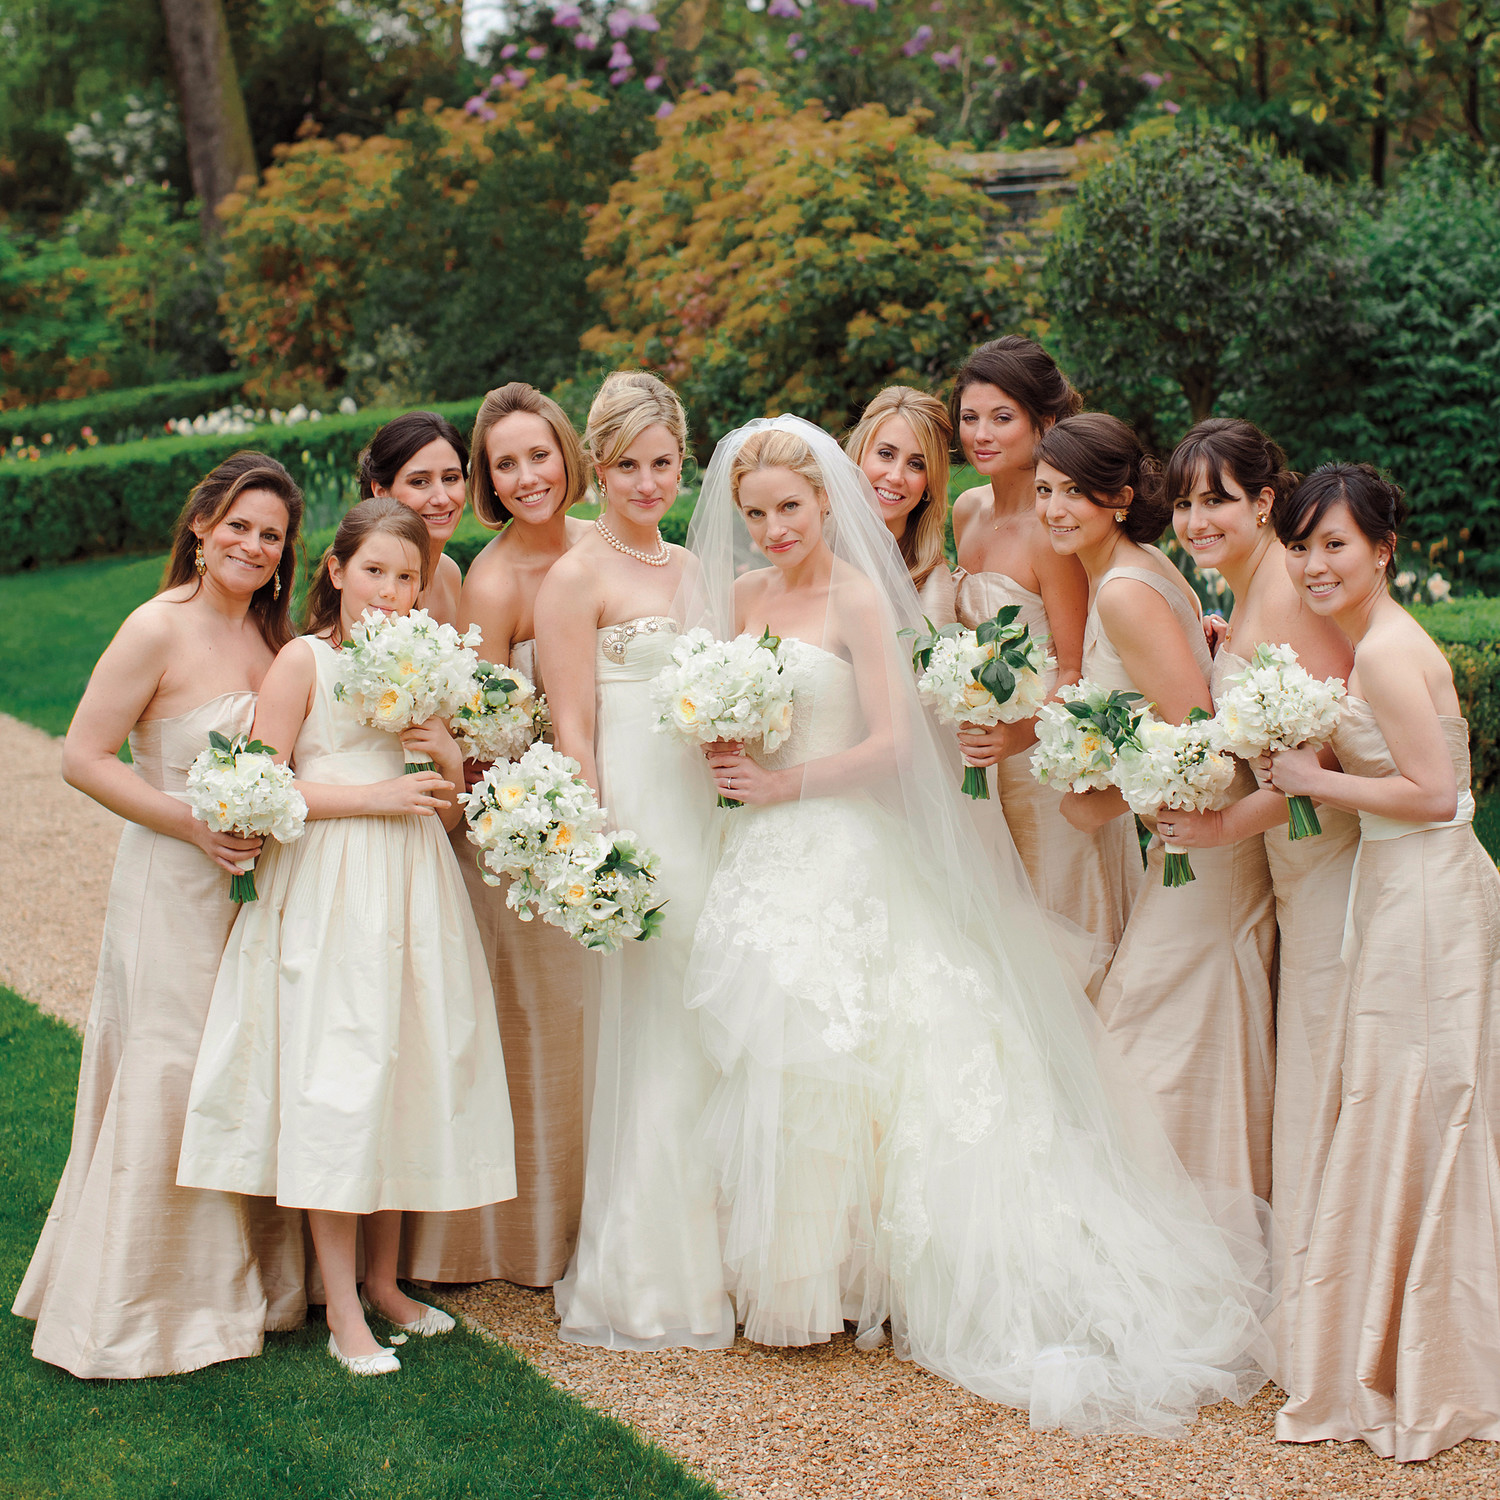 A Formal Pink and Gold Destination Wedding in France